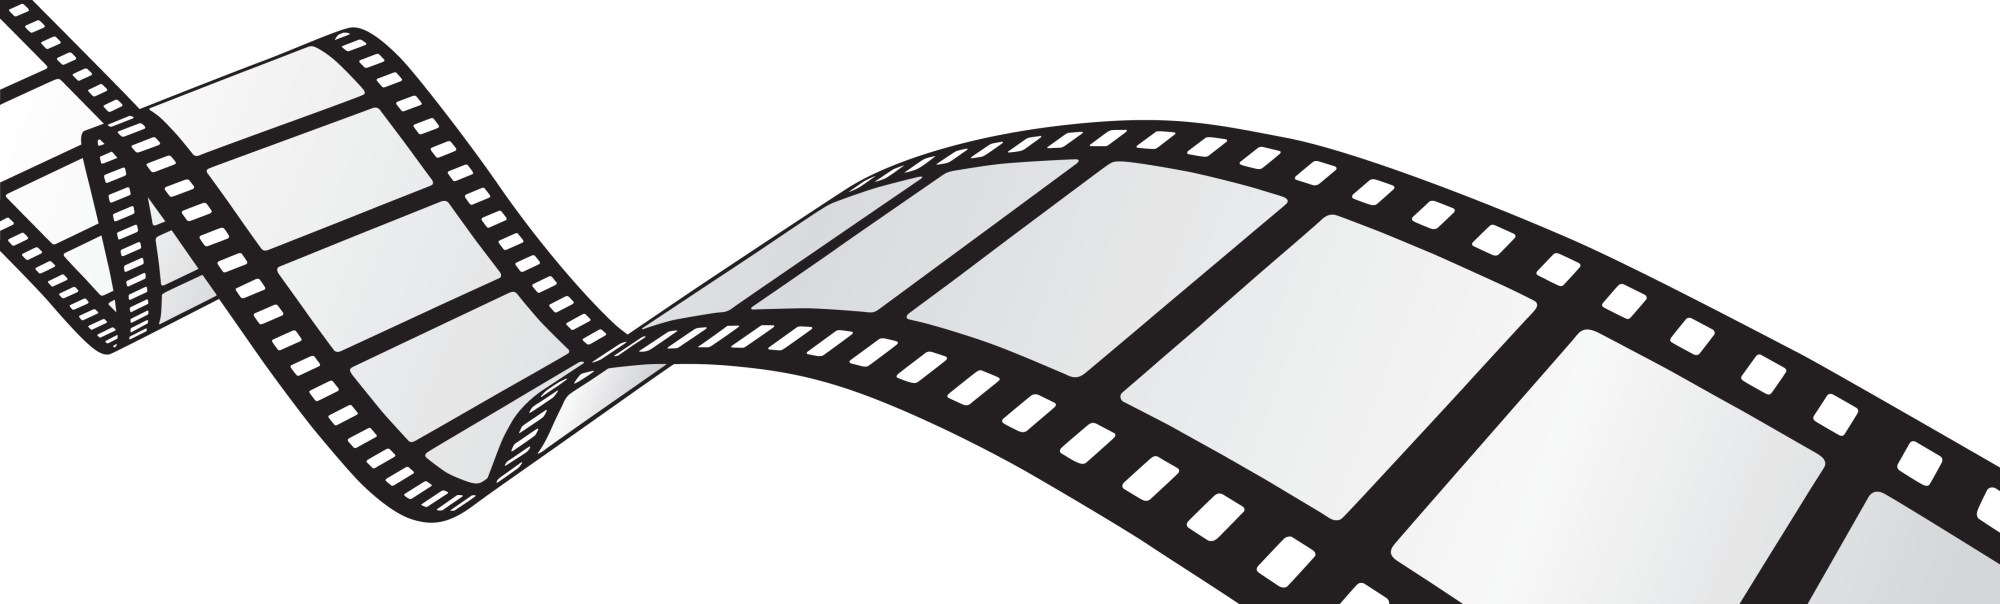 hight resolution of film clipart hd